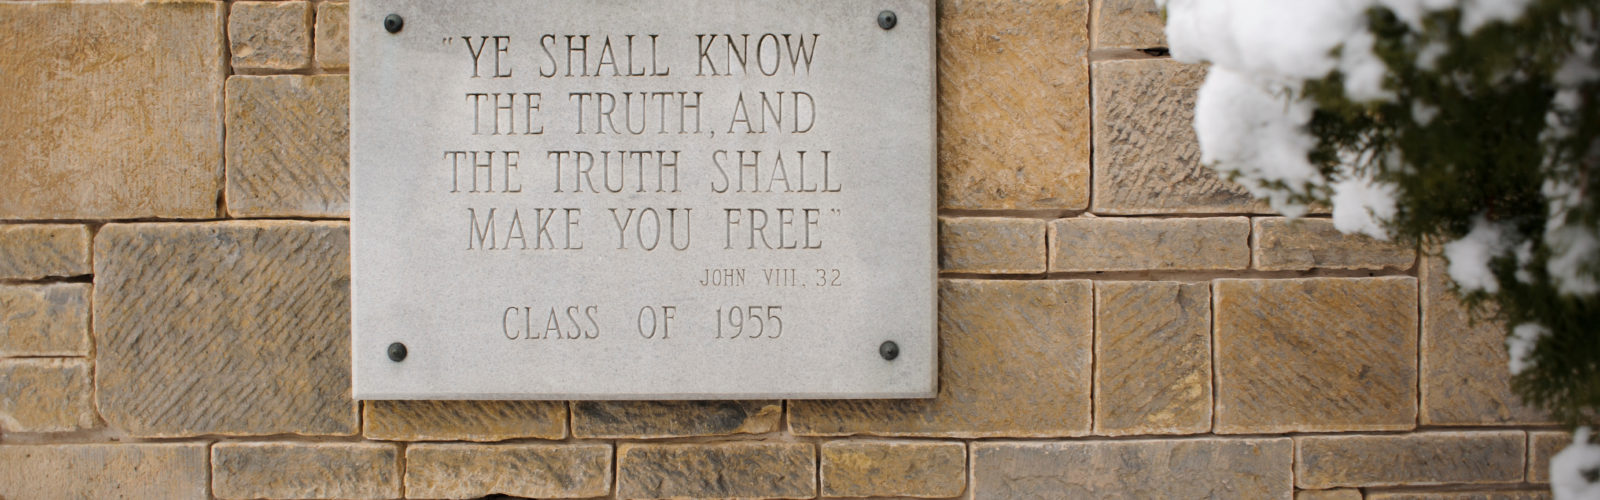 "Stone plaque reading, ""Ye shall know the truth, and the truth shall make you free."""